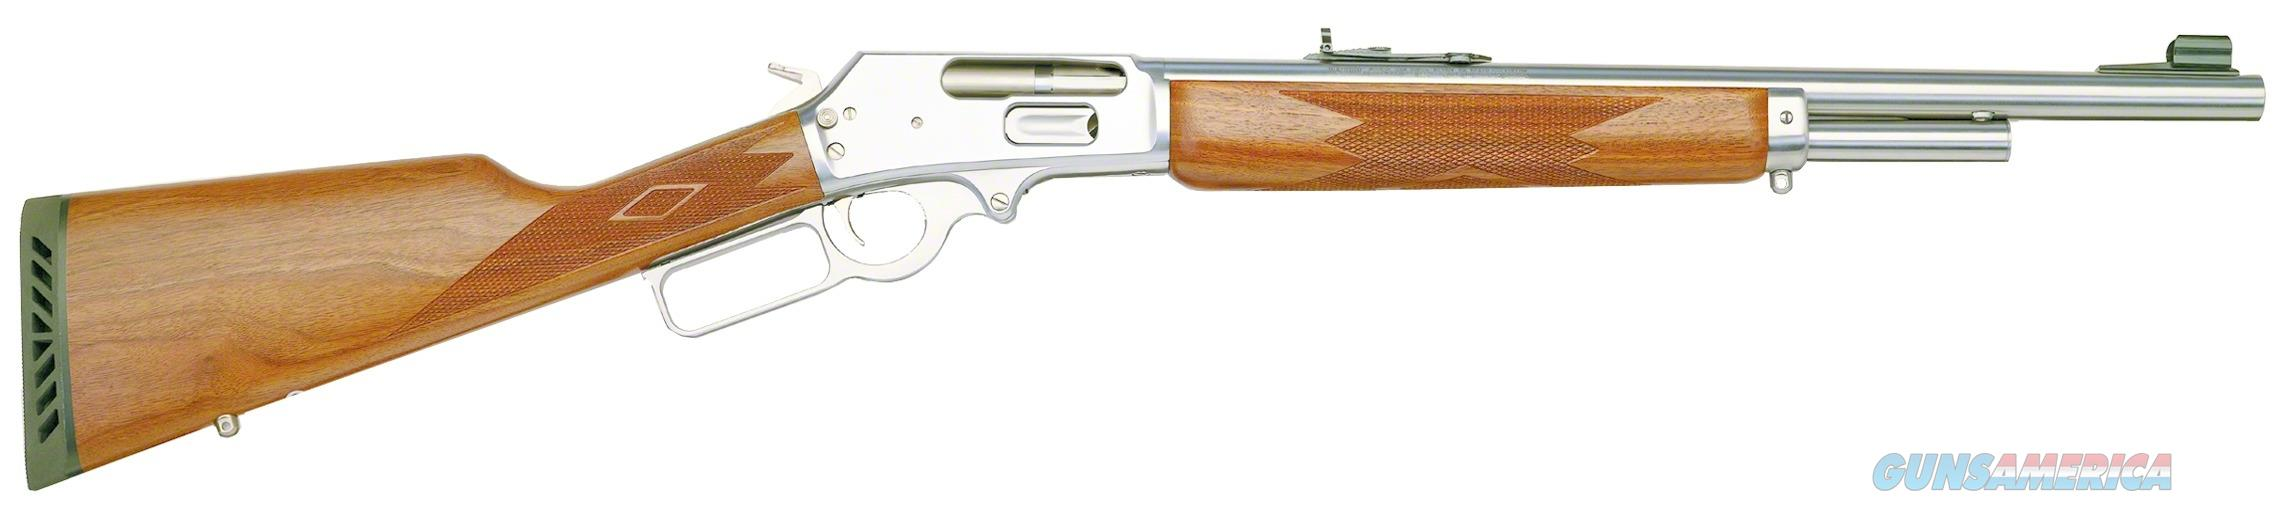 Marlin 1895Gs Lever Action Rifle 45-70 Govt, Rh, 18.5 In, S/S, Wood Stk, 4+1 Rnd 70464  Guns > Rifles > MN Misc Rifles